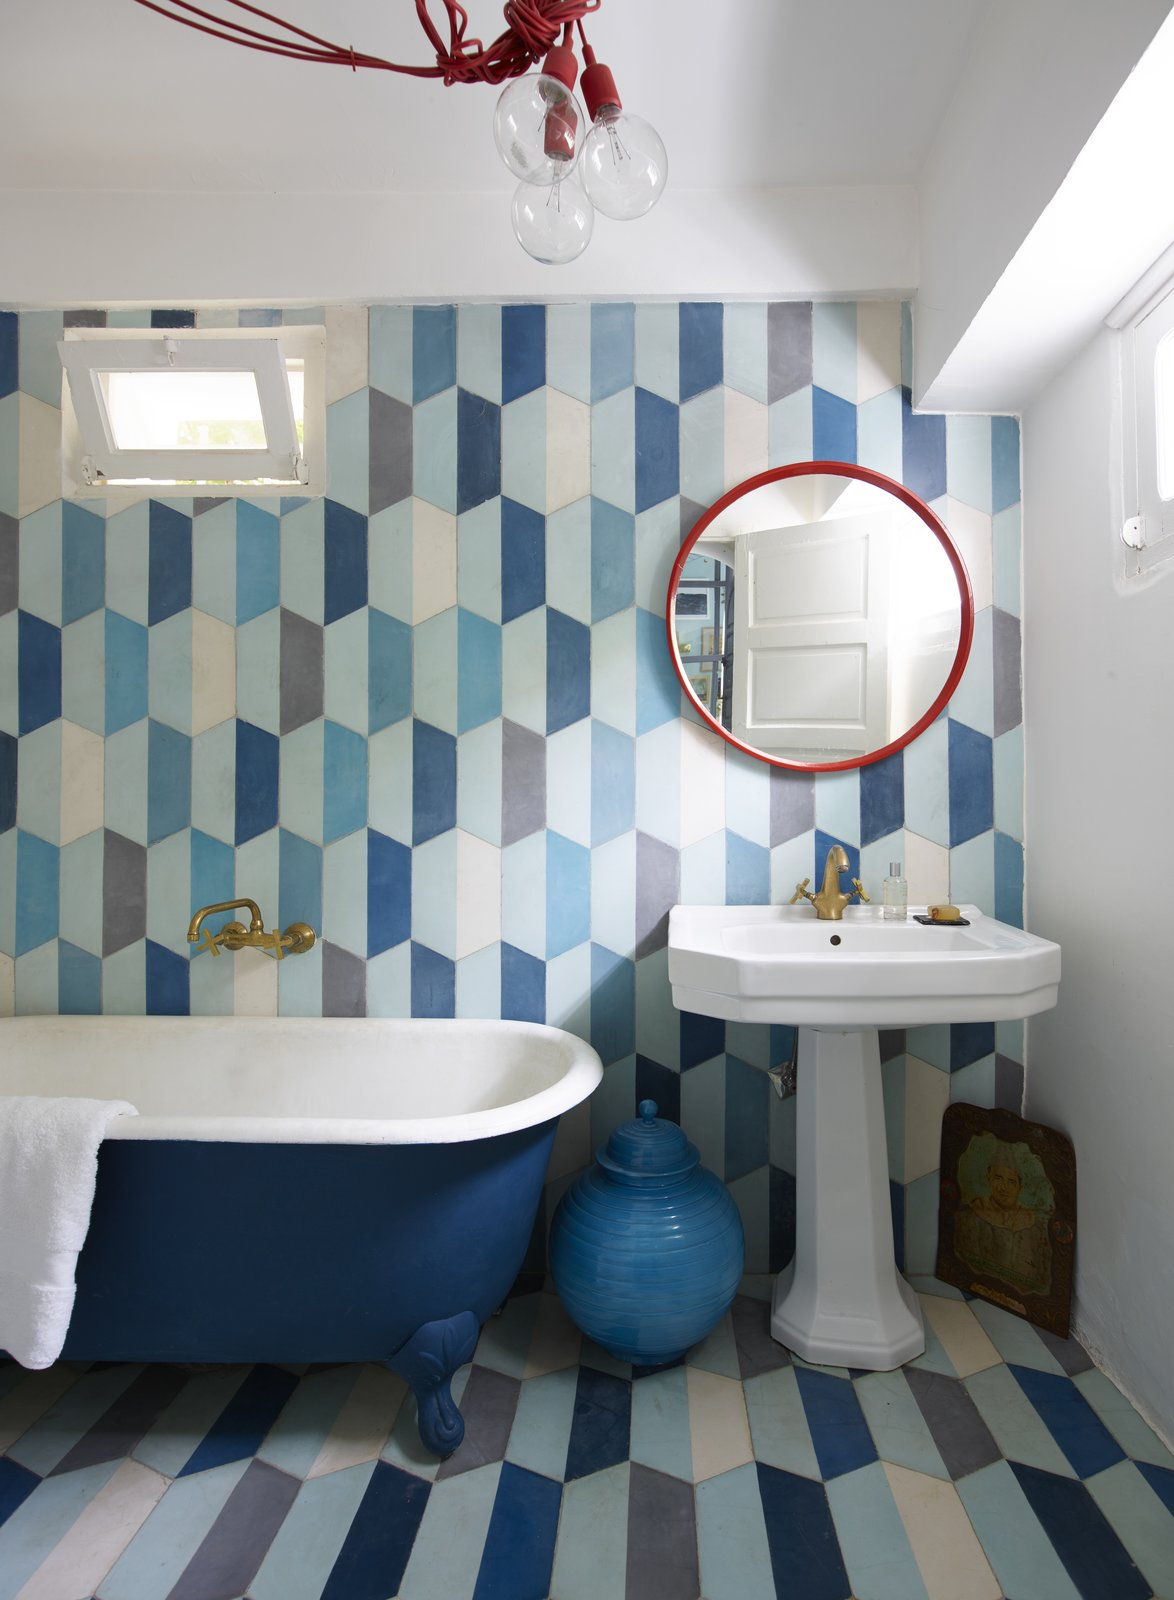 Bath, Pedestal, Freestanding, Pendant, Soaking, Ceramic Tile, and Ceramic Tile Marrakesh–headquartered Popham Design is all about bright, bold, and colorful tiles that can transform your floors, walls, and backsplashes into works of art.  Best Bath Soaking Pendant Freestanding Ceramic Tile Ceramic Tile Photos from 5 Artisan Tile Companies That Can Elevate Your Home